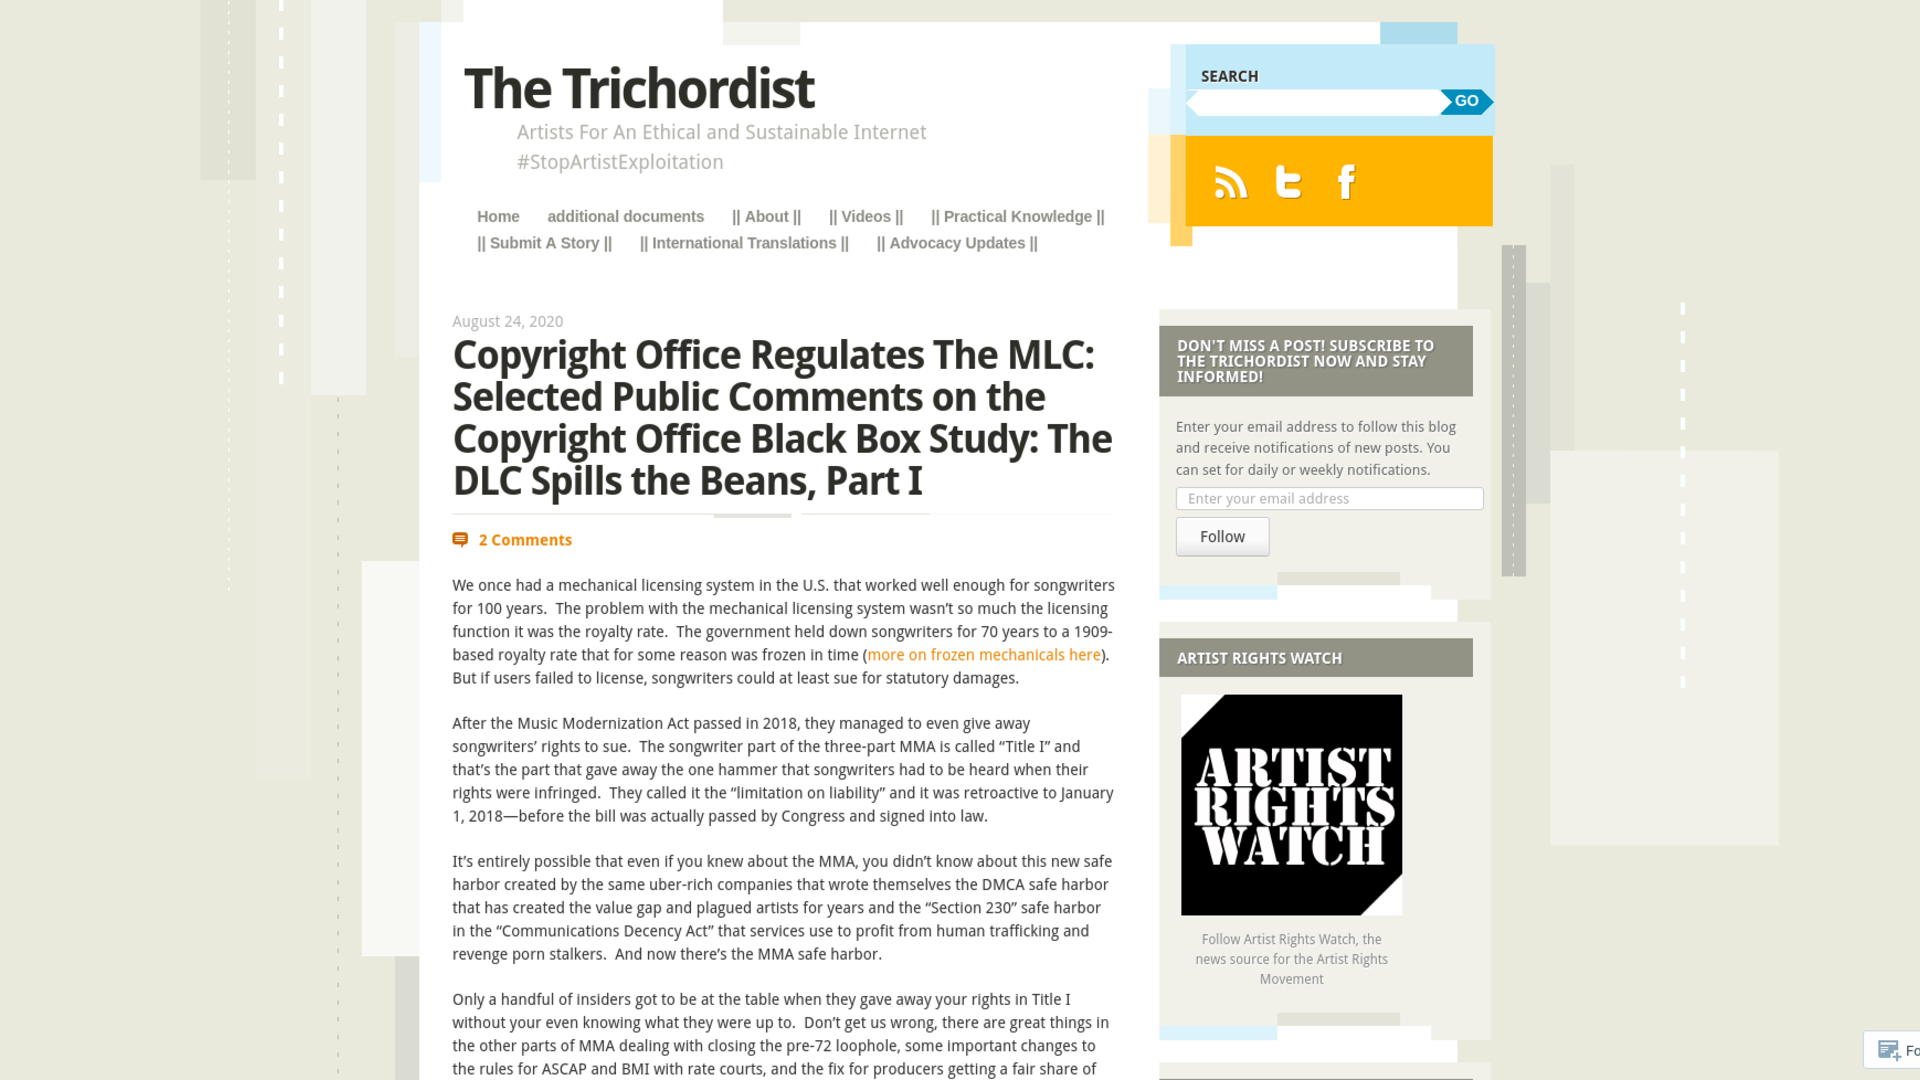 Fairness Rocks News Copyright Office Regulates The MLC: Selected Public Comments on the Copyright Office Black Box Study: The DLC Spills the Beans, Part 3